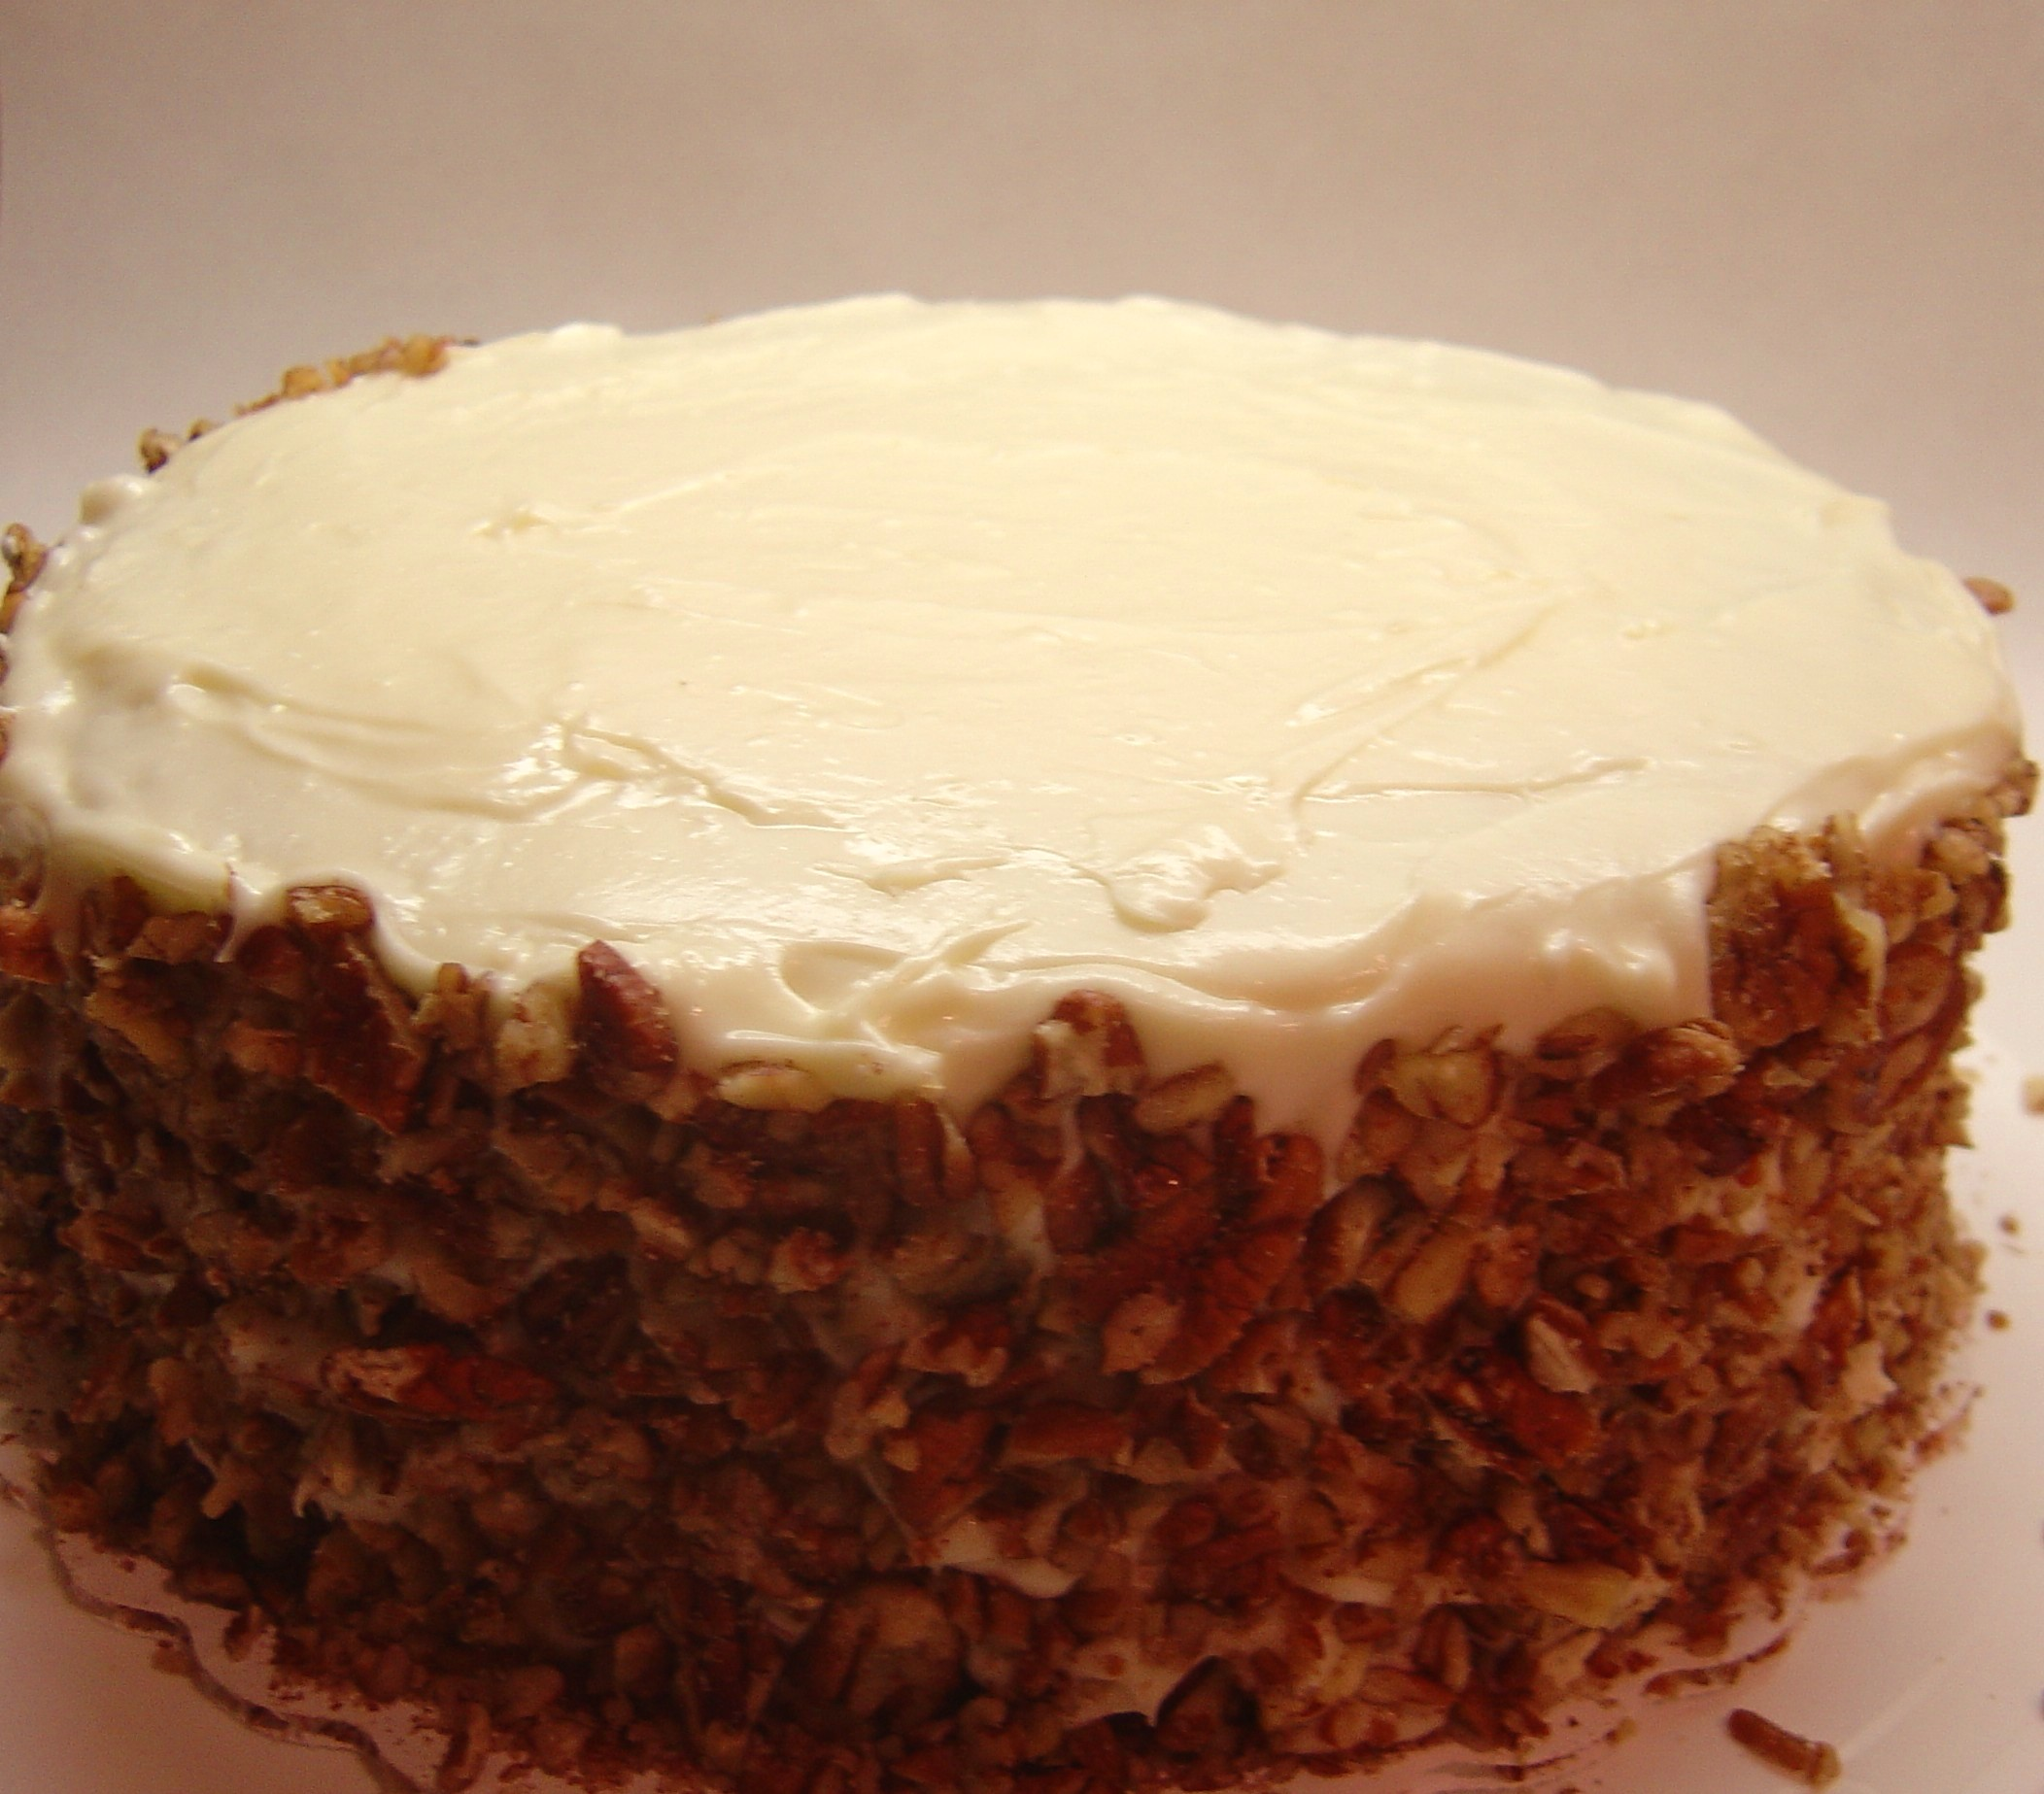 Blissfully Delicious: Carrot Cake With Cream Cheese Frosting